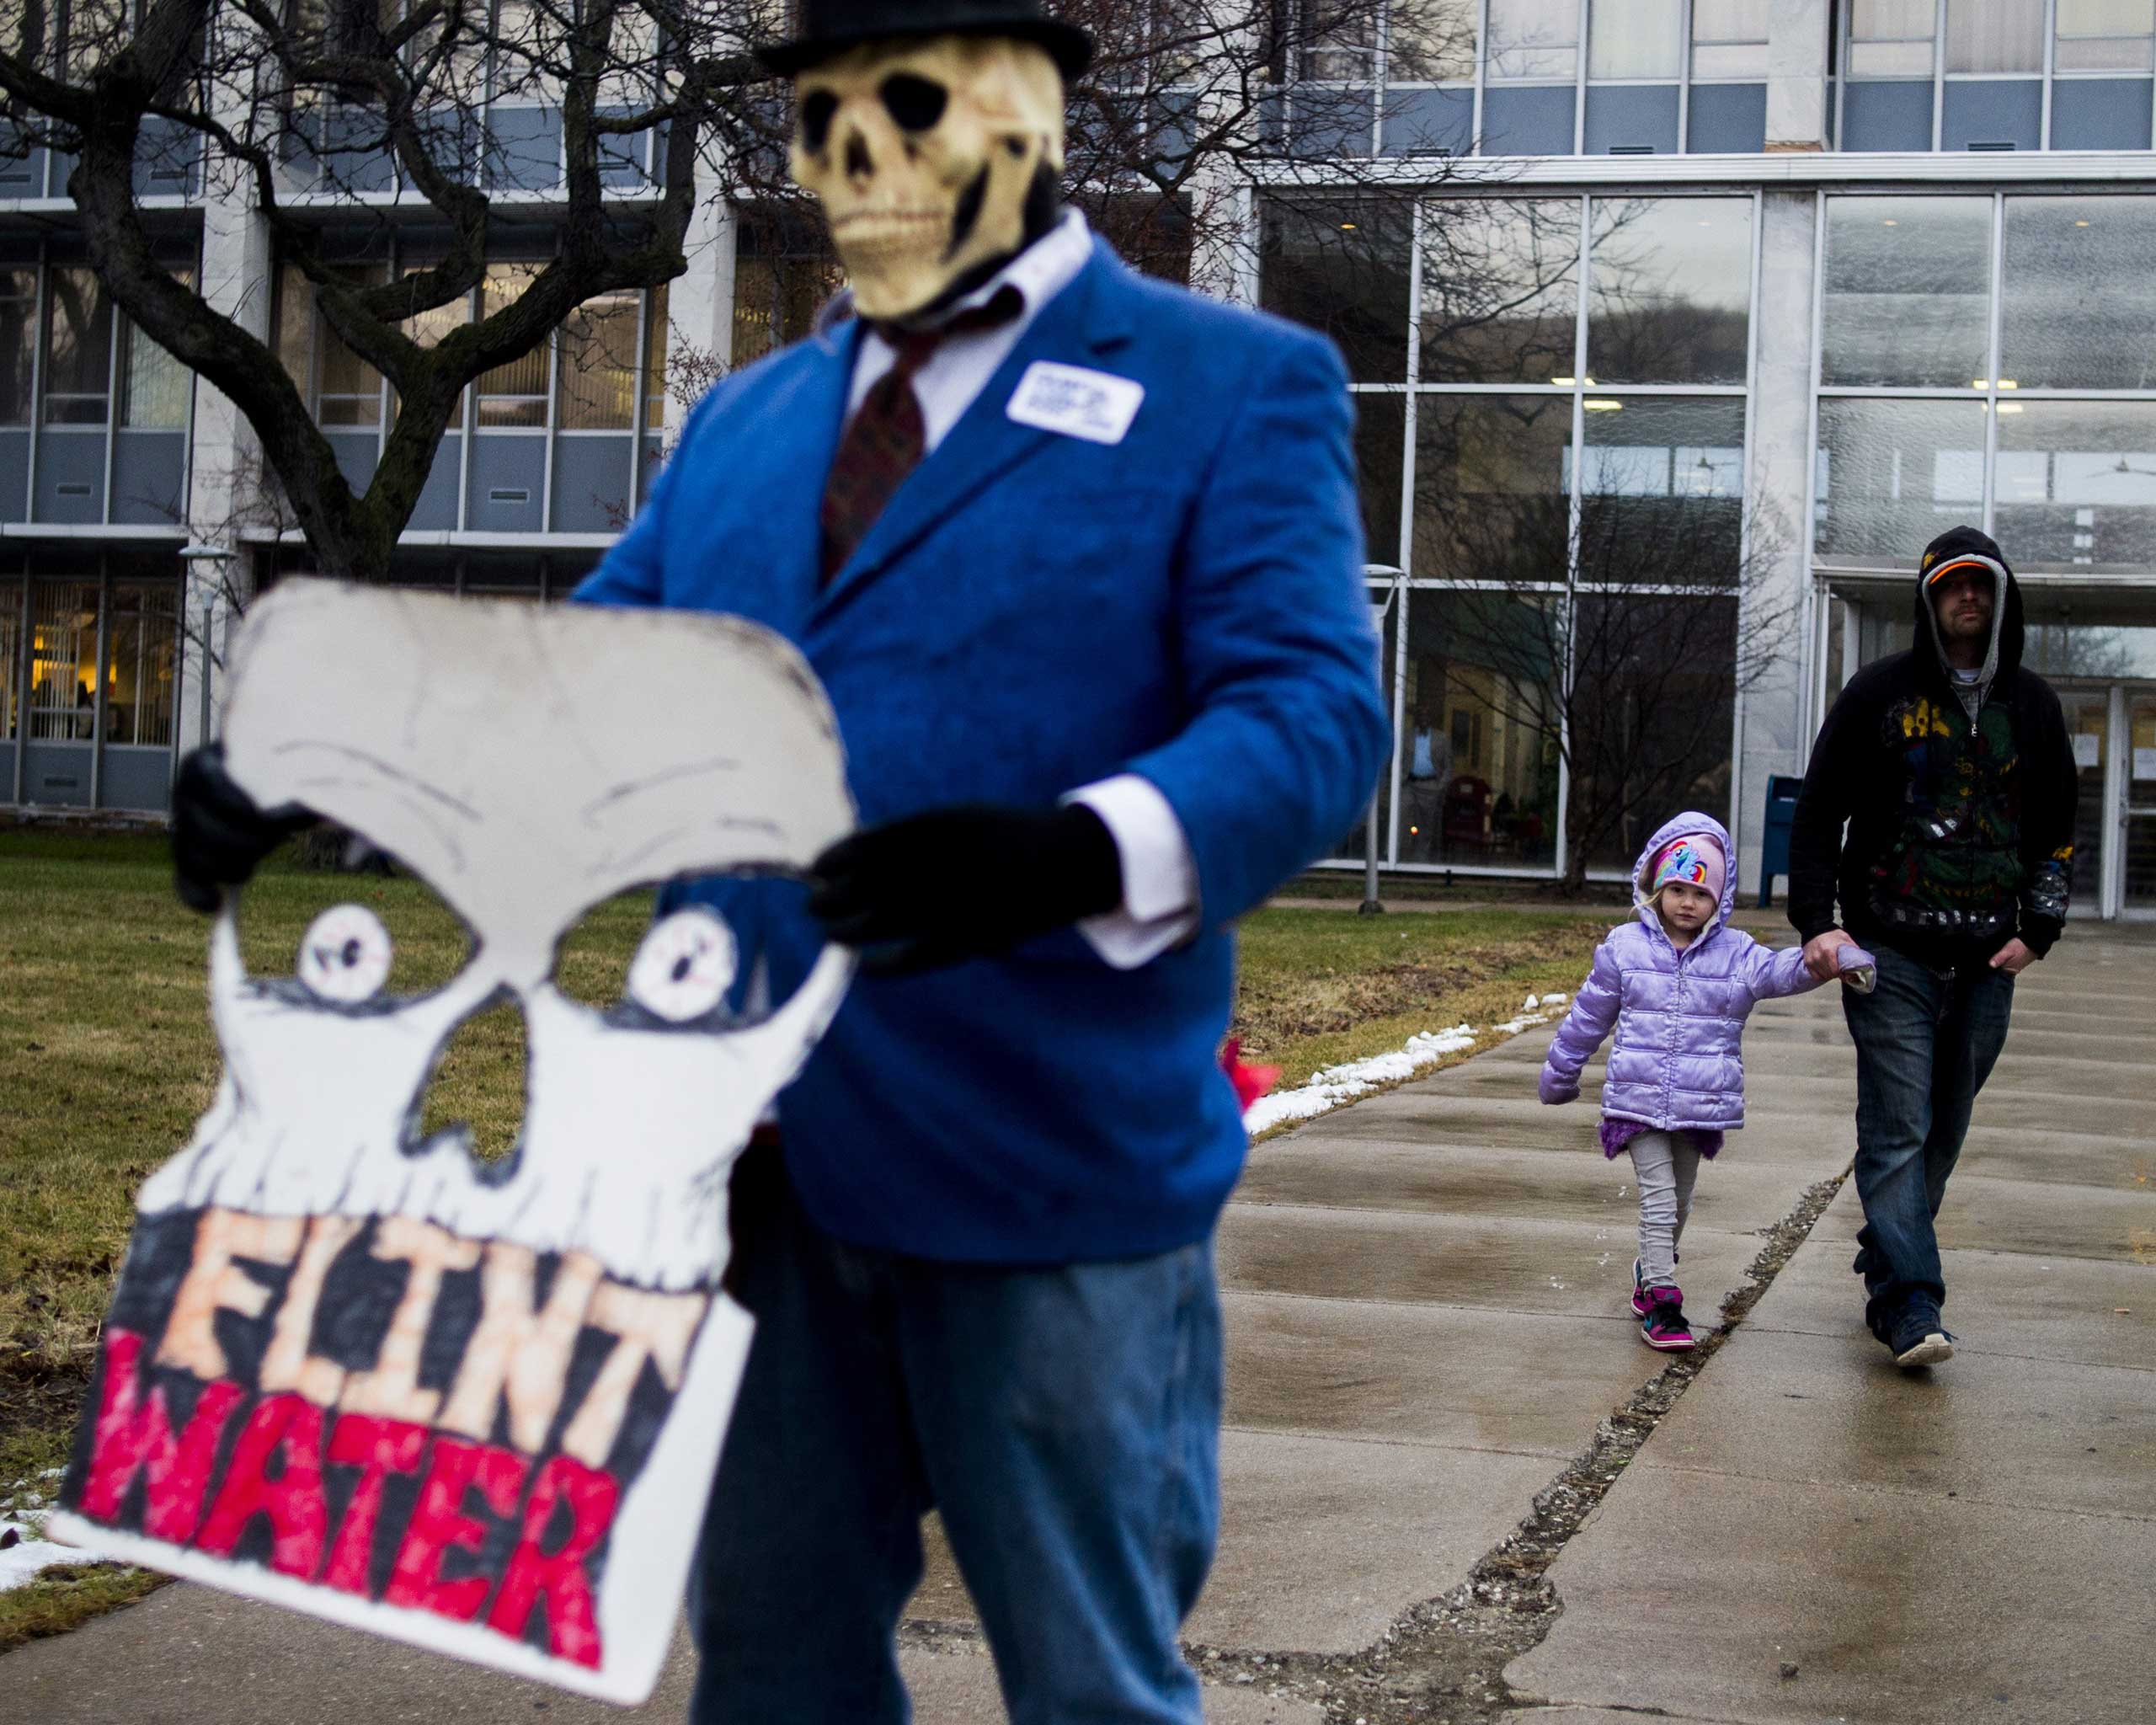 Flint resident Mike Hickey holds the hand of his daughter Natielee, 4, as they walk past activists who are outside of City Hall to protest Michigan Gov. Rick Snyder's handling of the water crisis Jan. 8, 2016 in Flint. Mich.